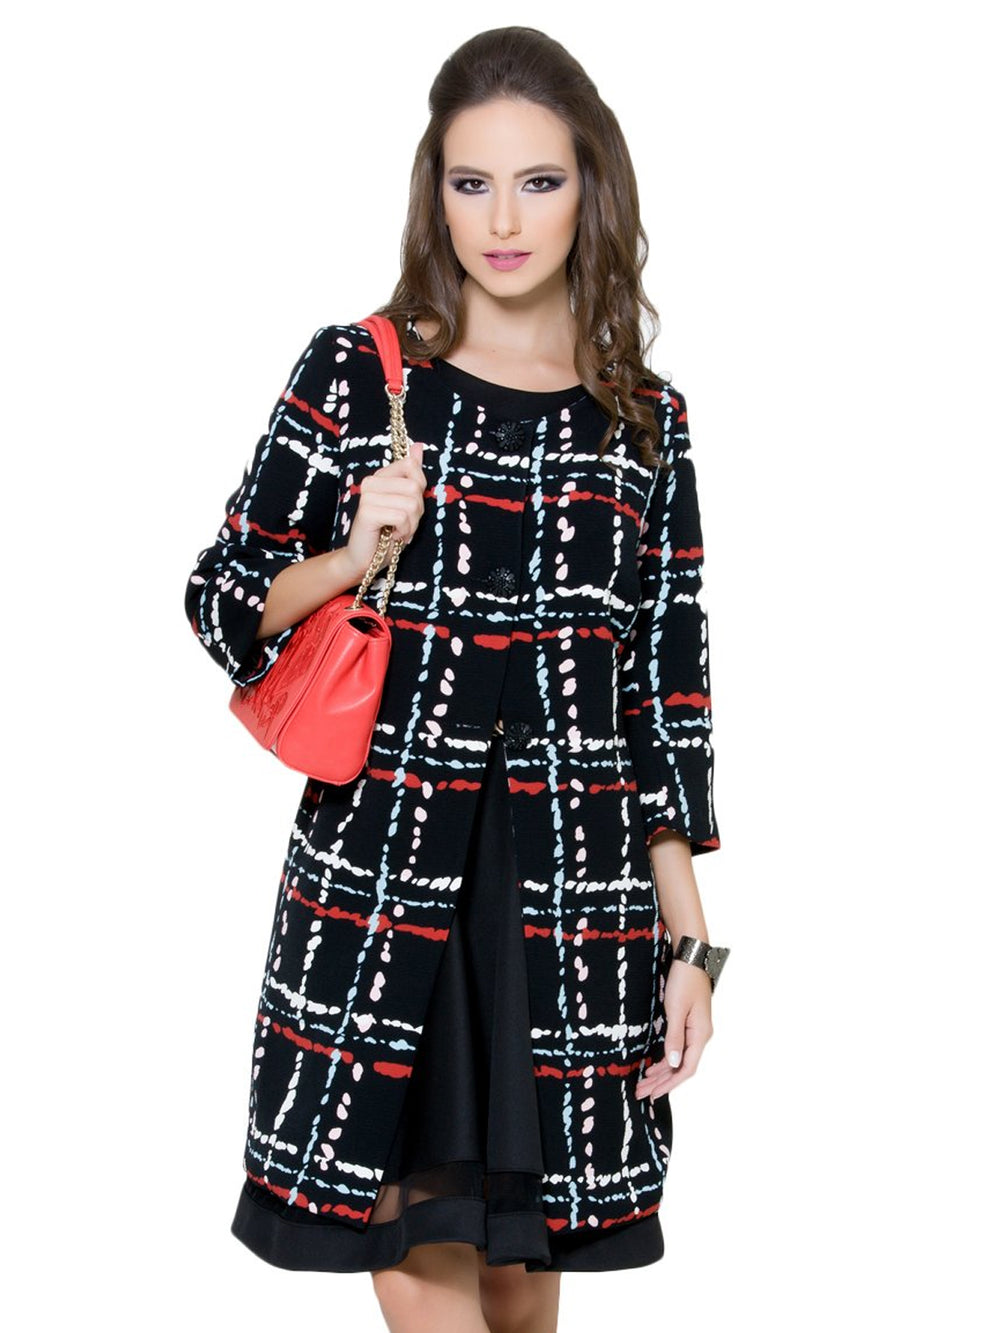 Square Prints Coat